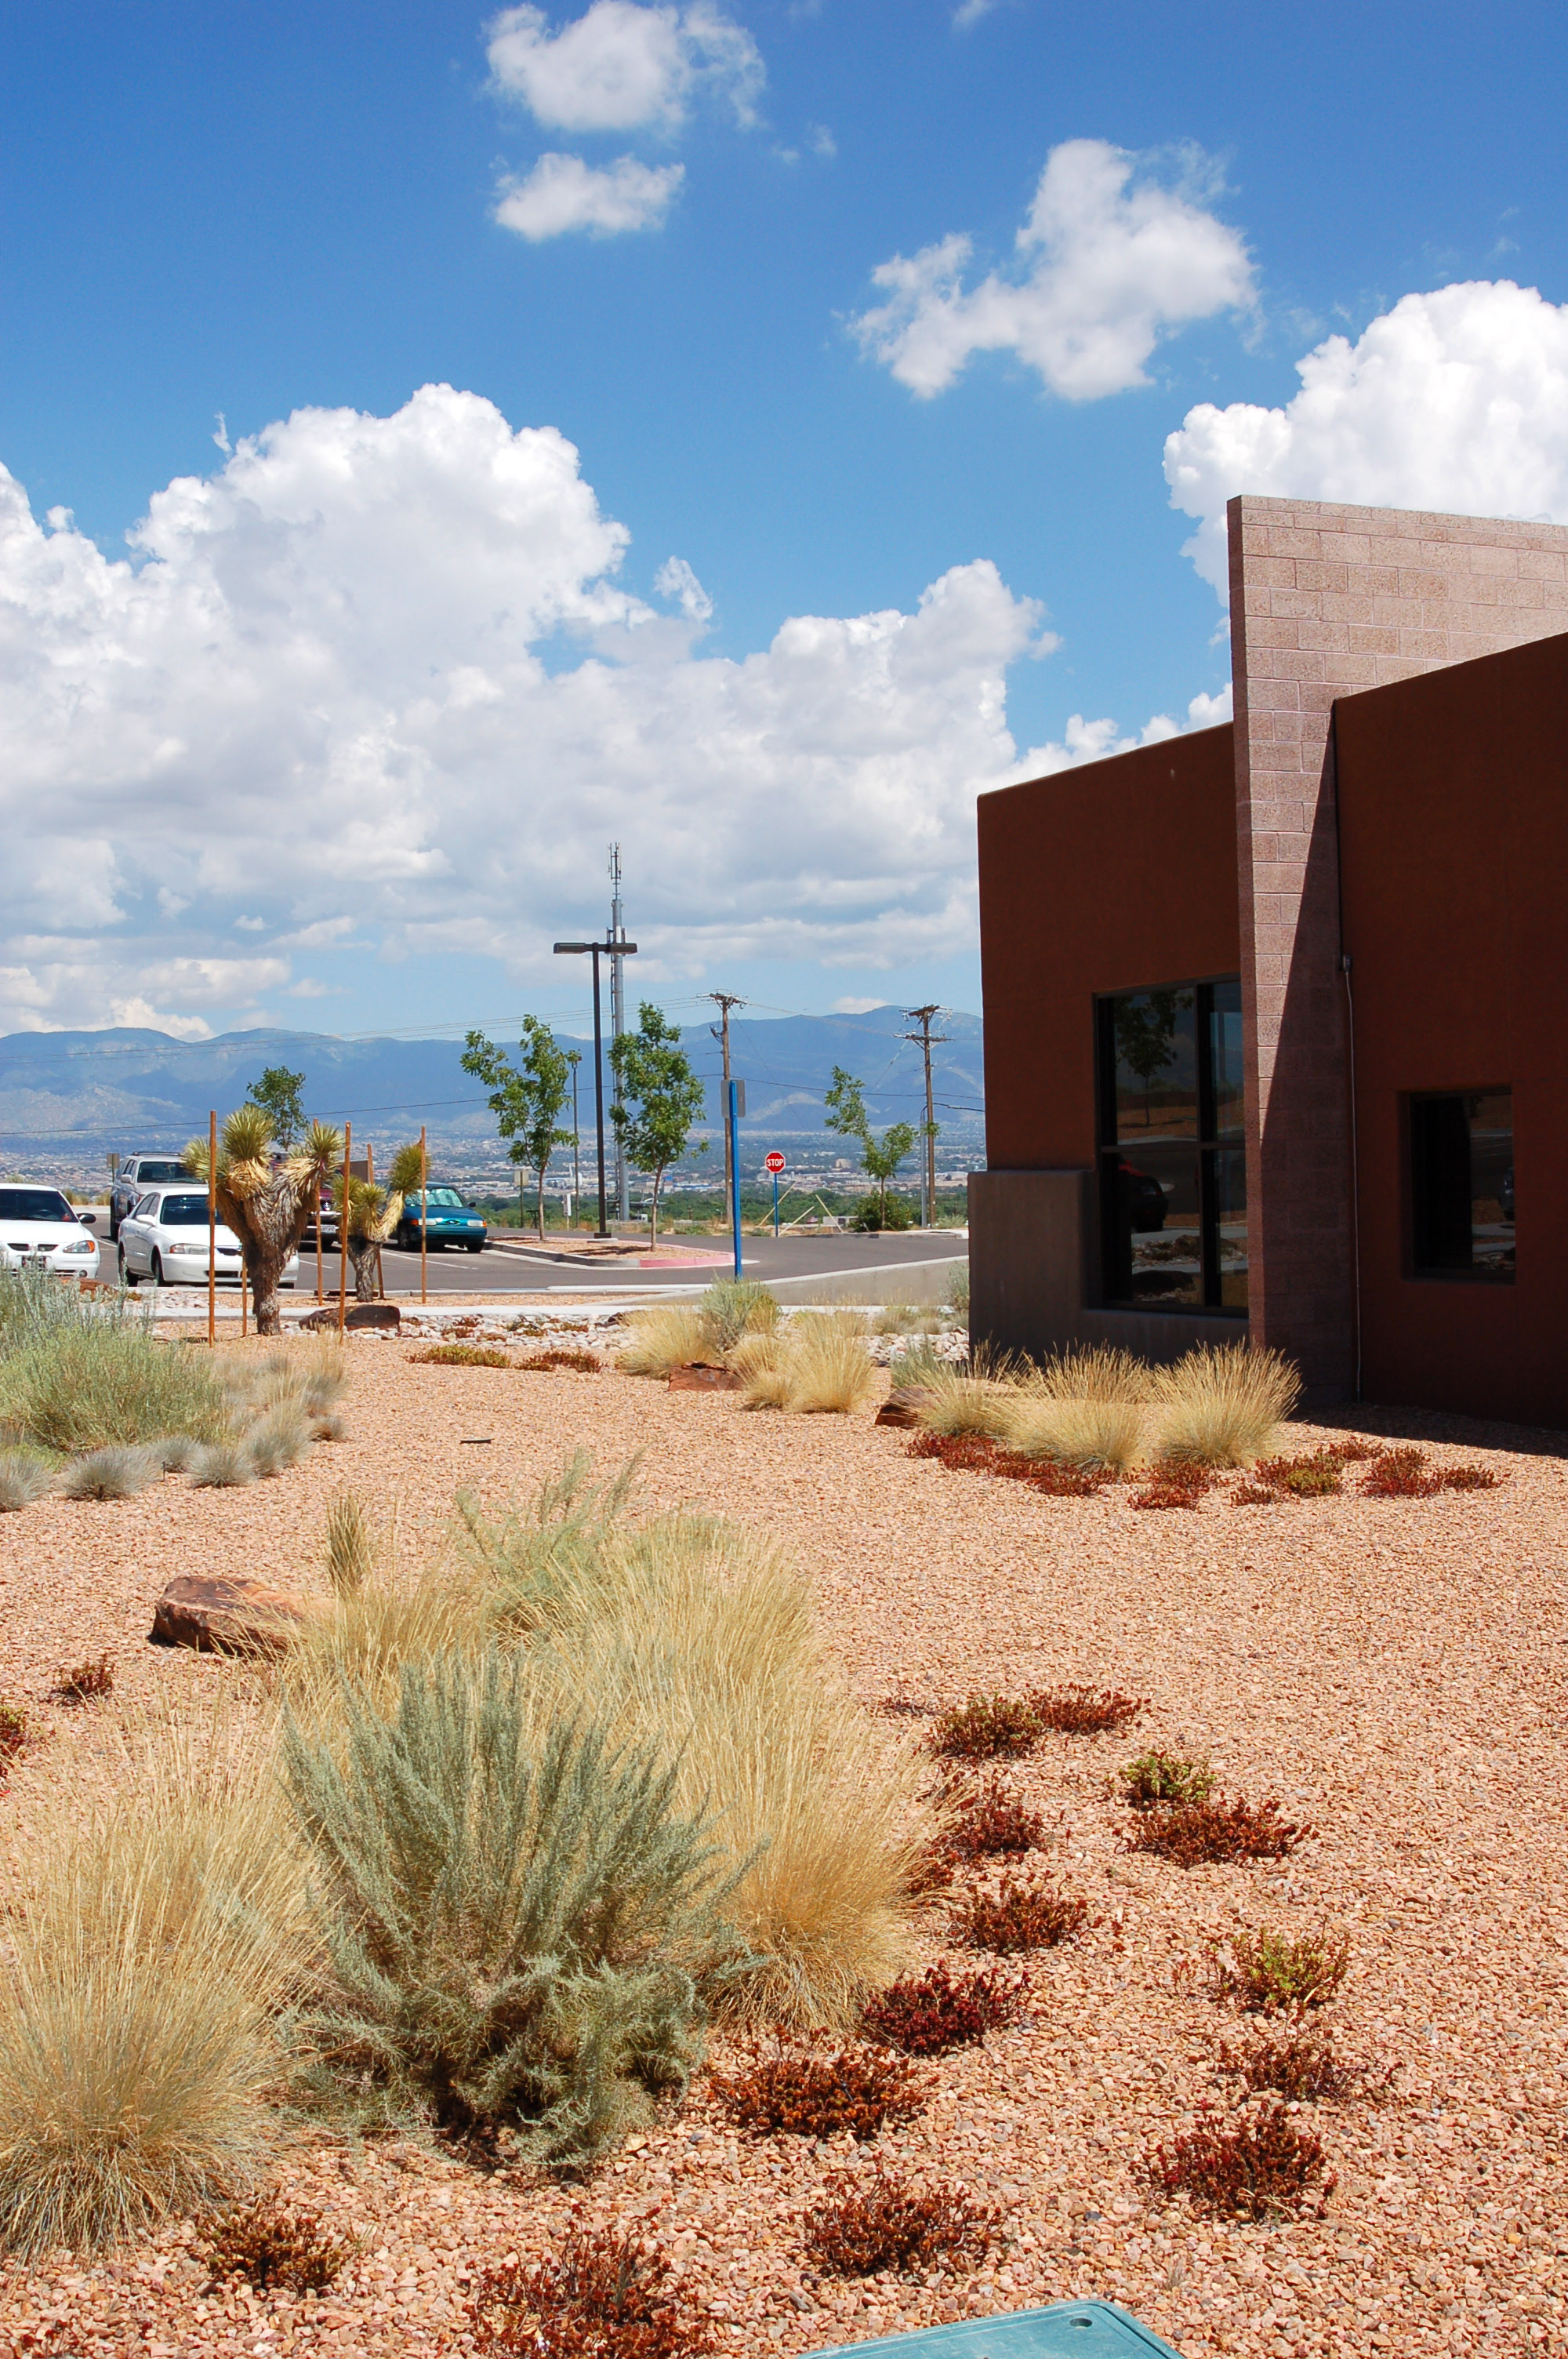 Medical office uses low water ornamental desert plants to create xeric landscape